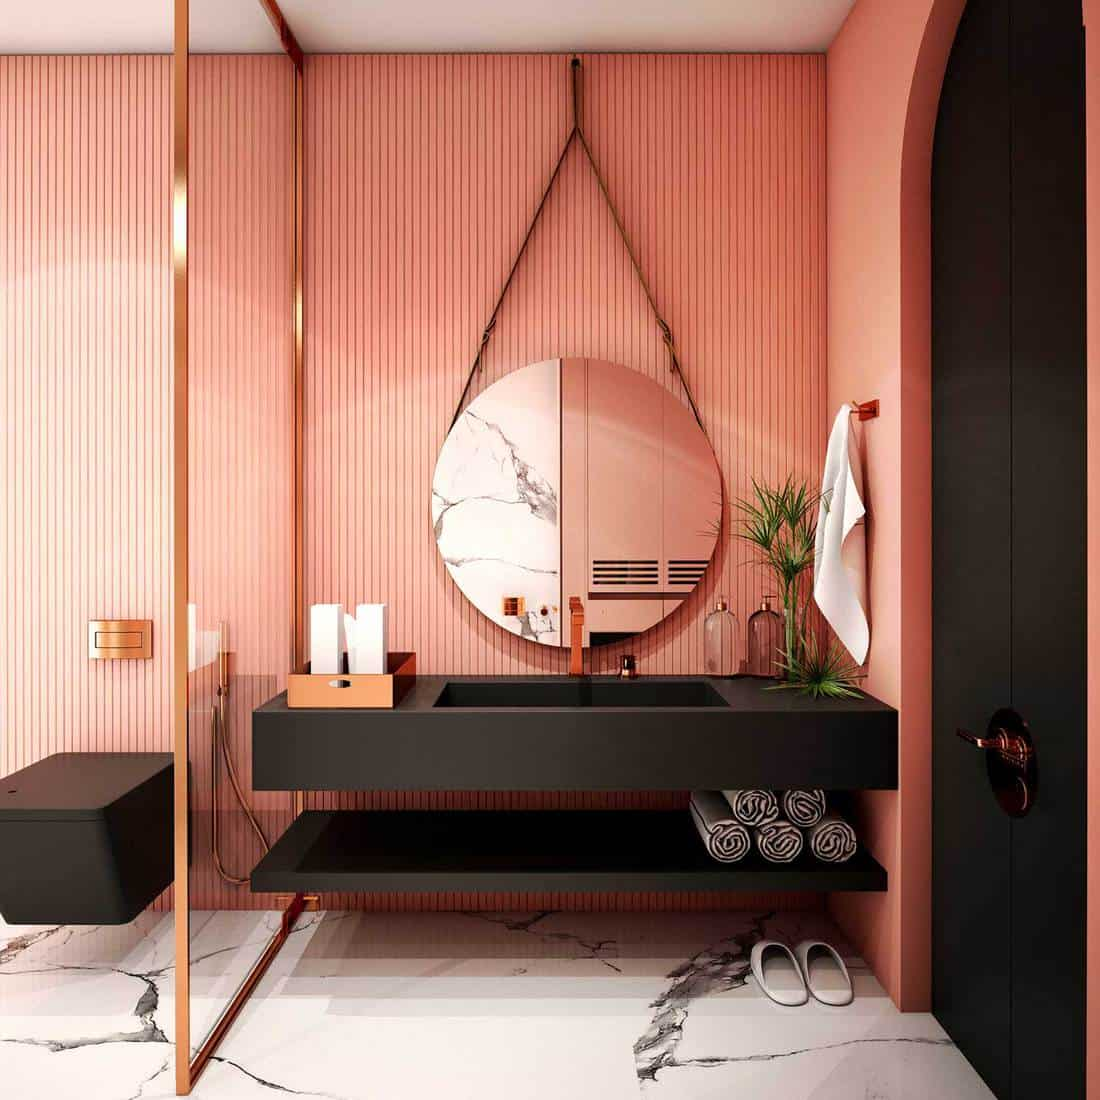 Modern bathroom with pink and black interior design